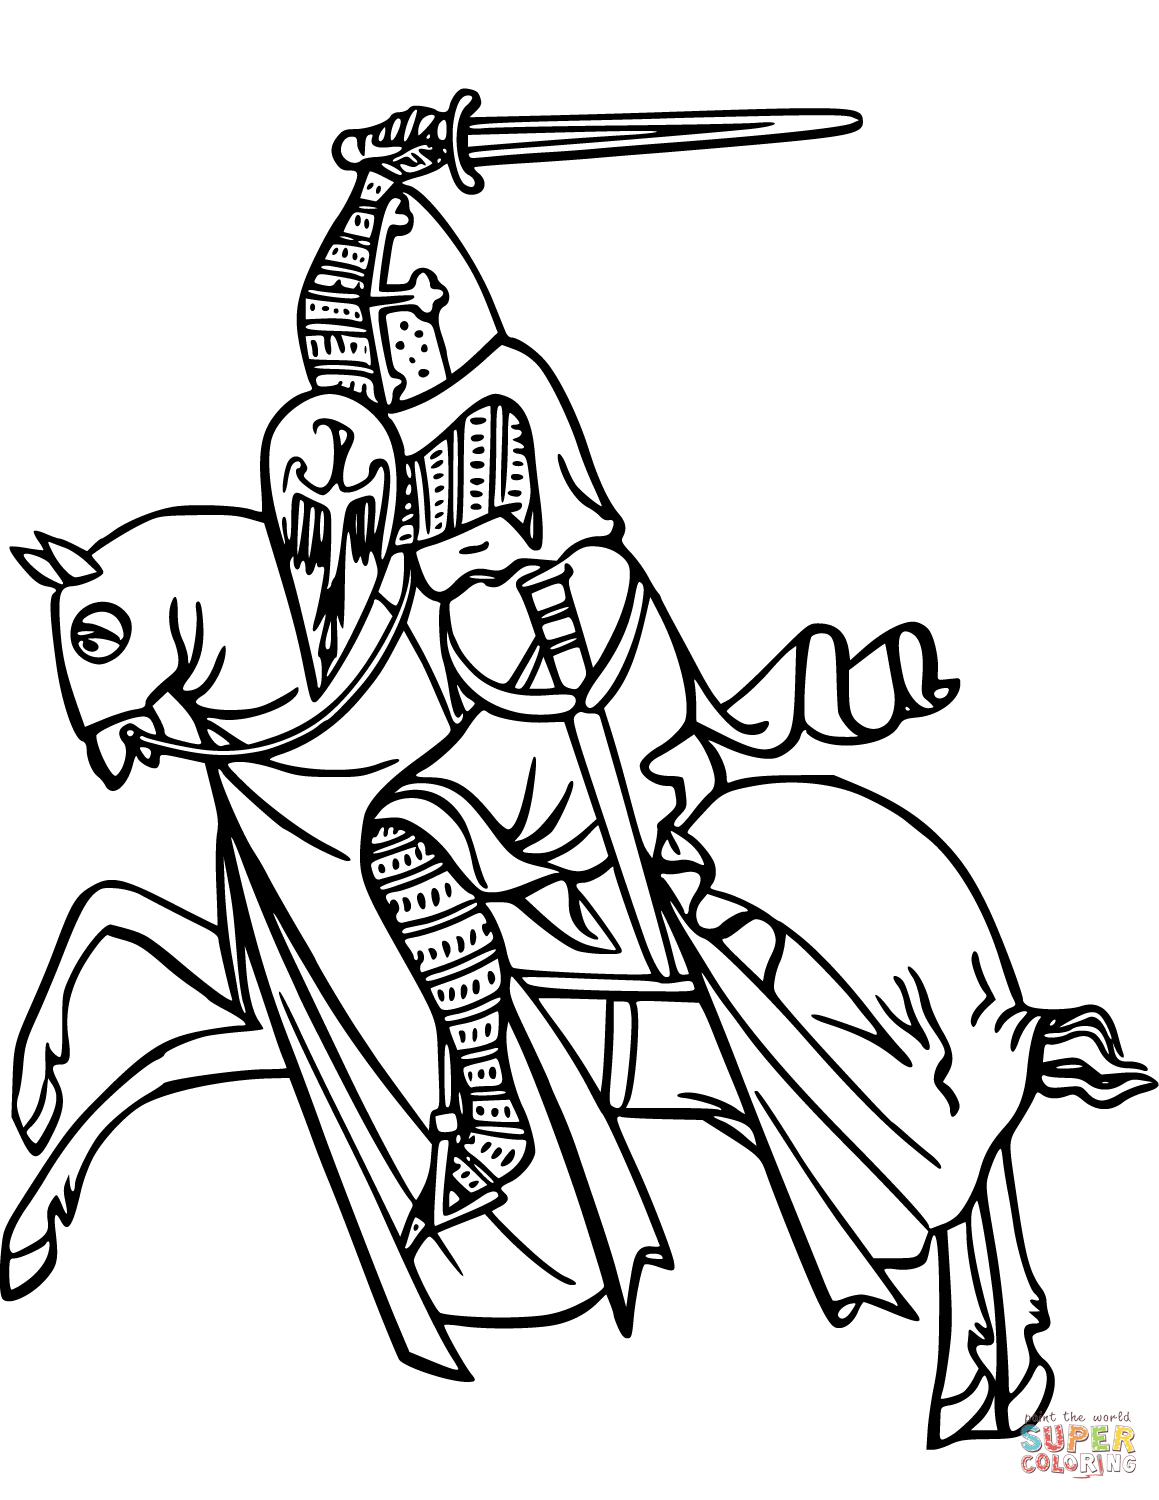 Knight coloring #18, Download drawings